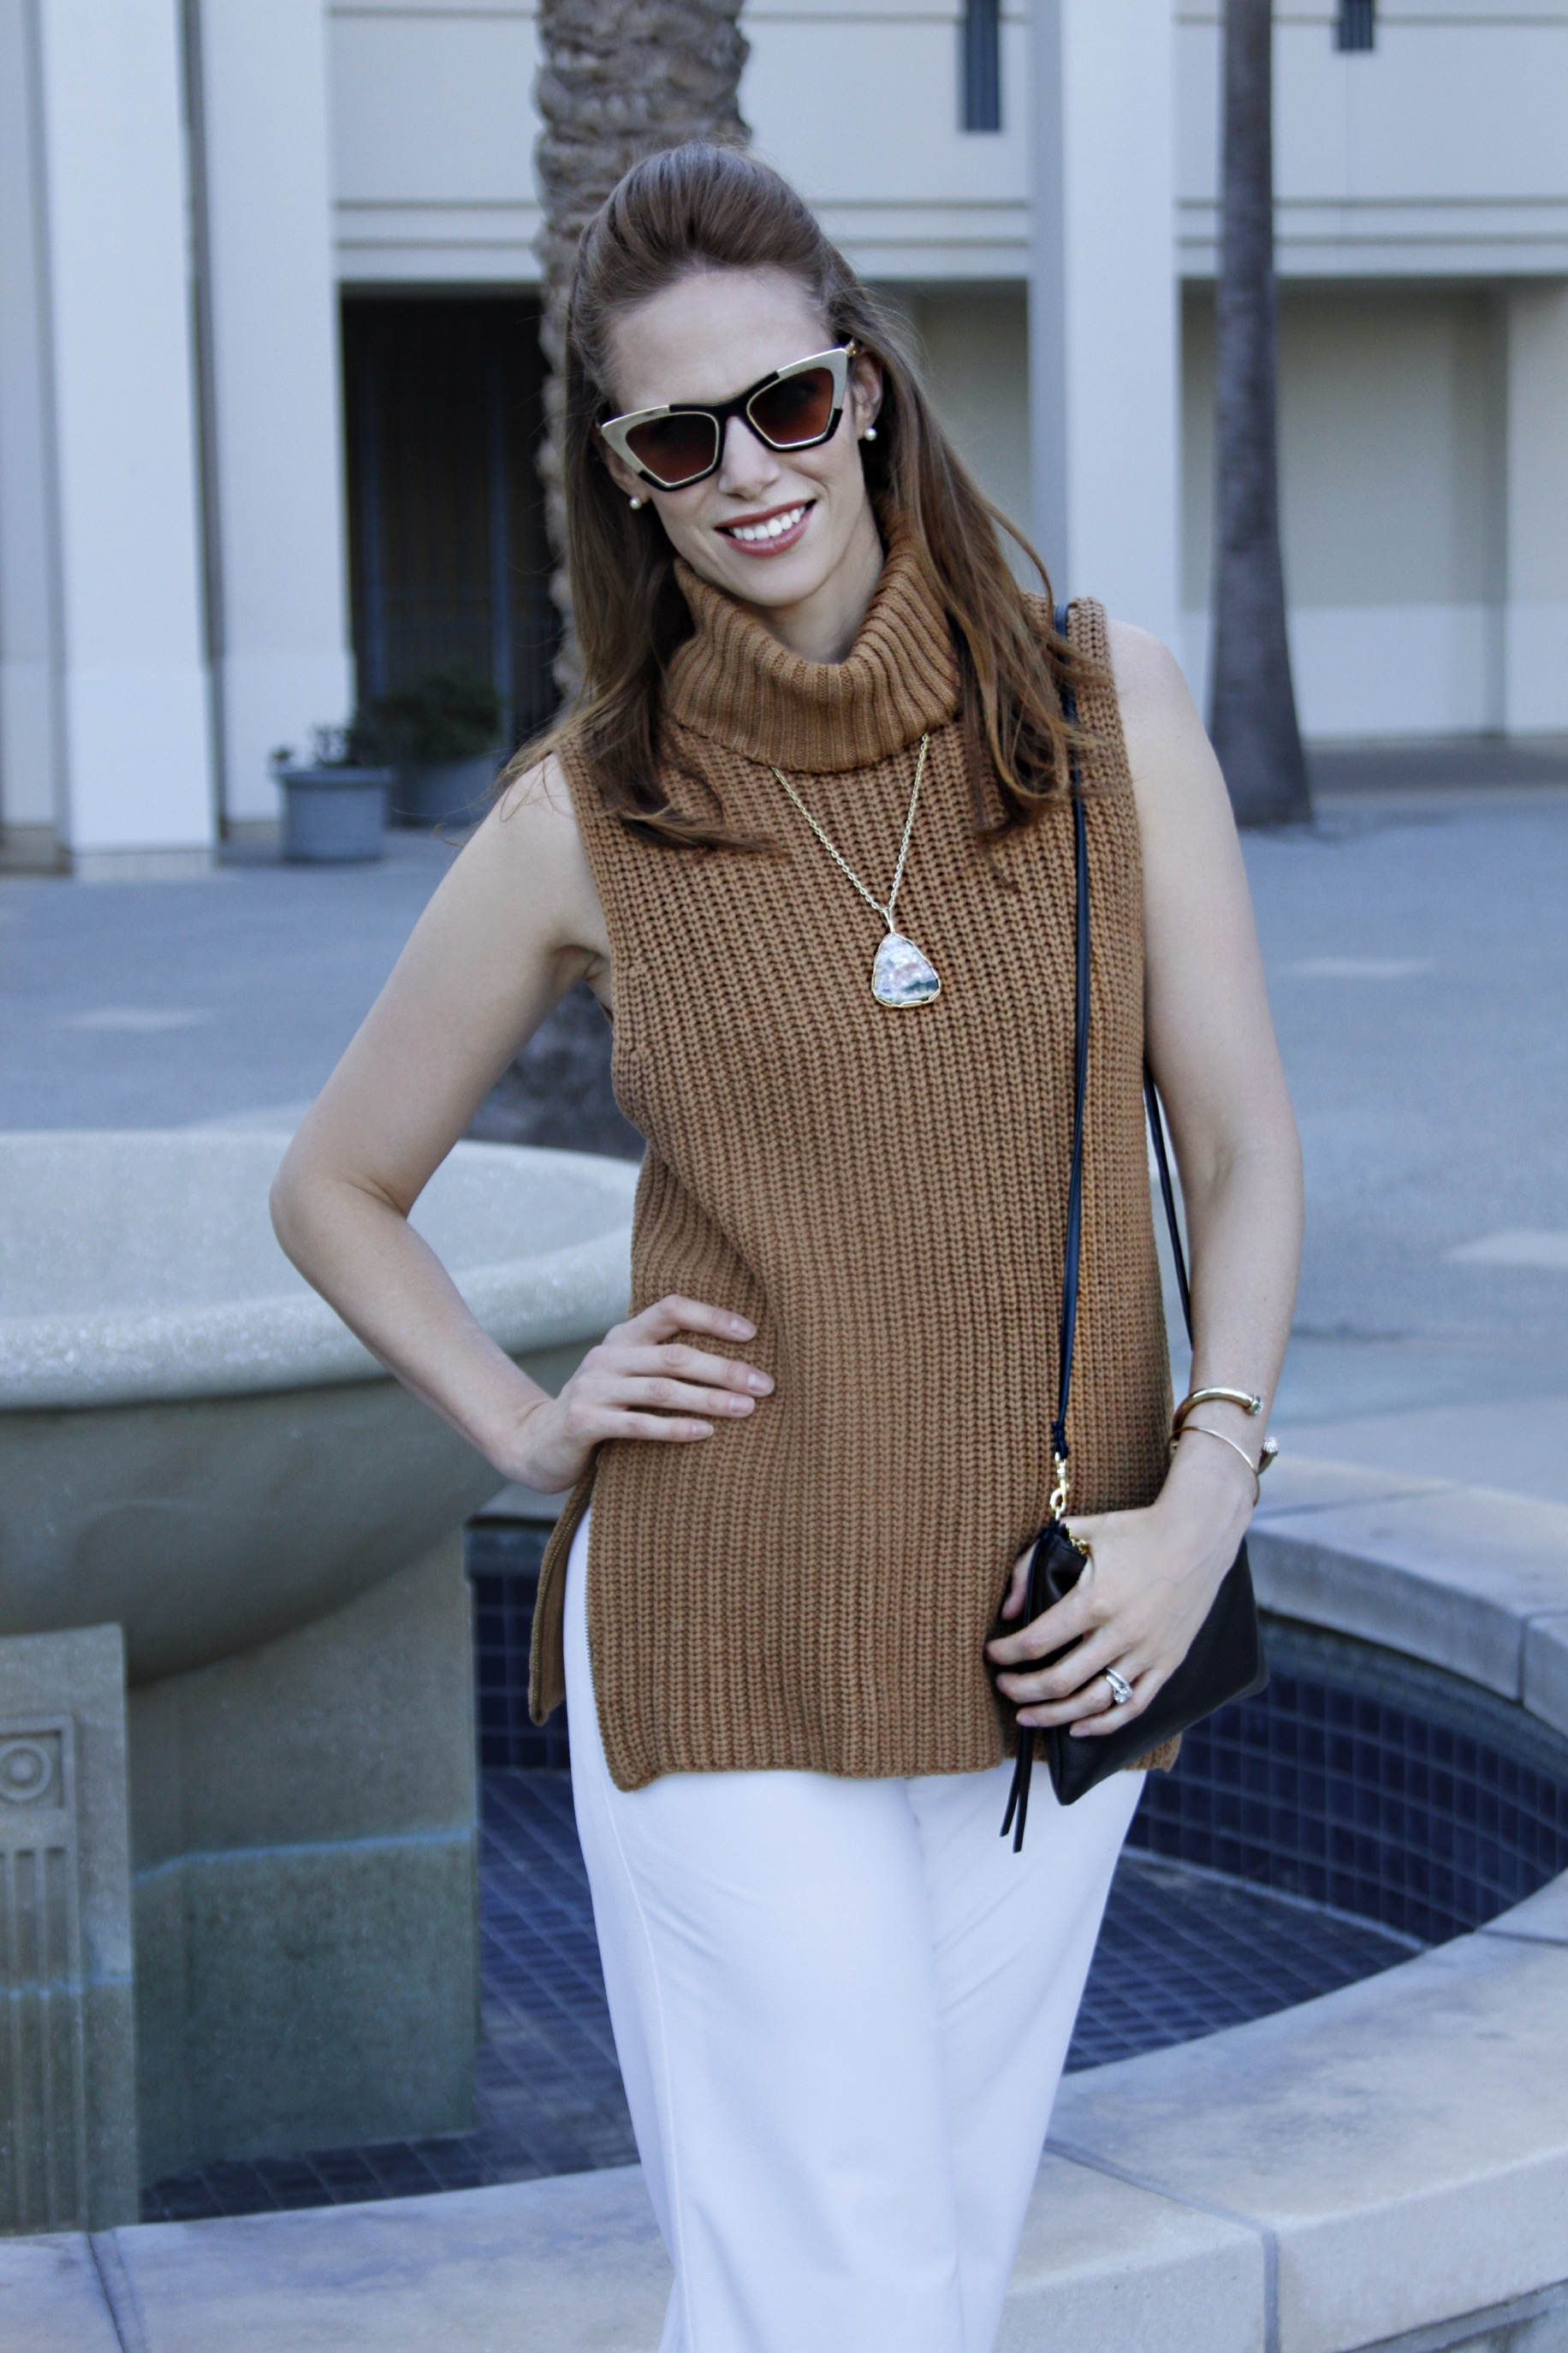 fall style chunky turtleneck retro shades